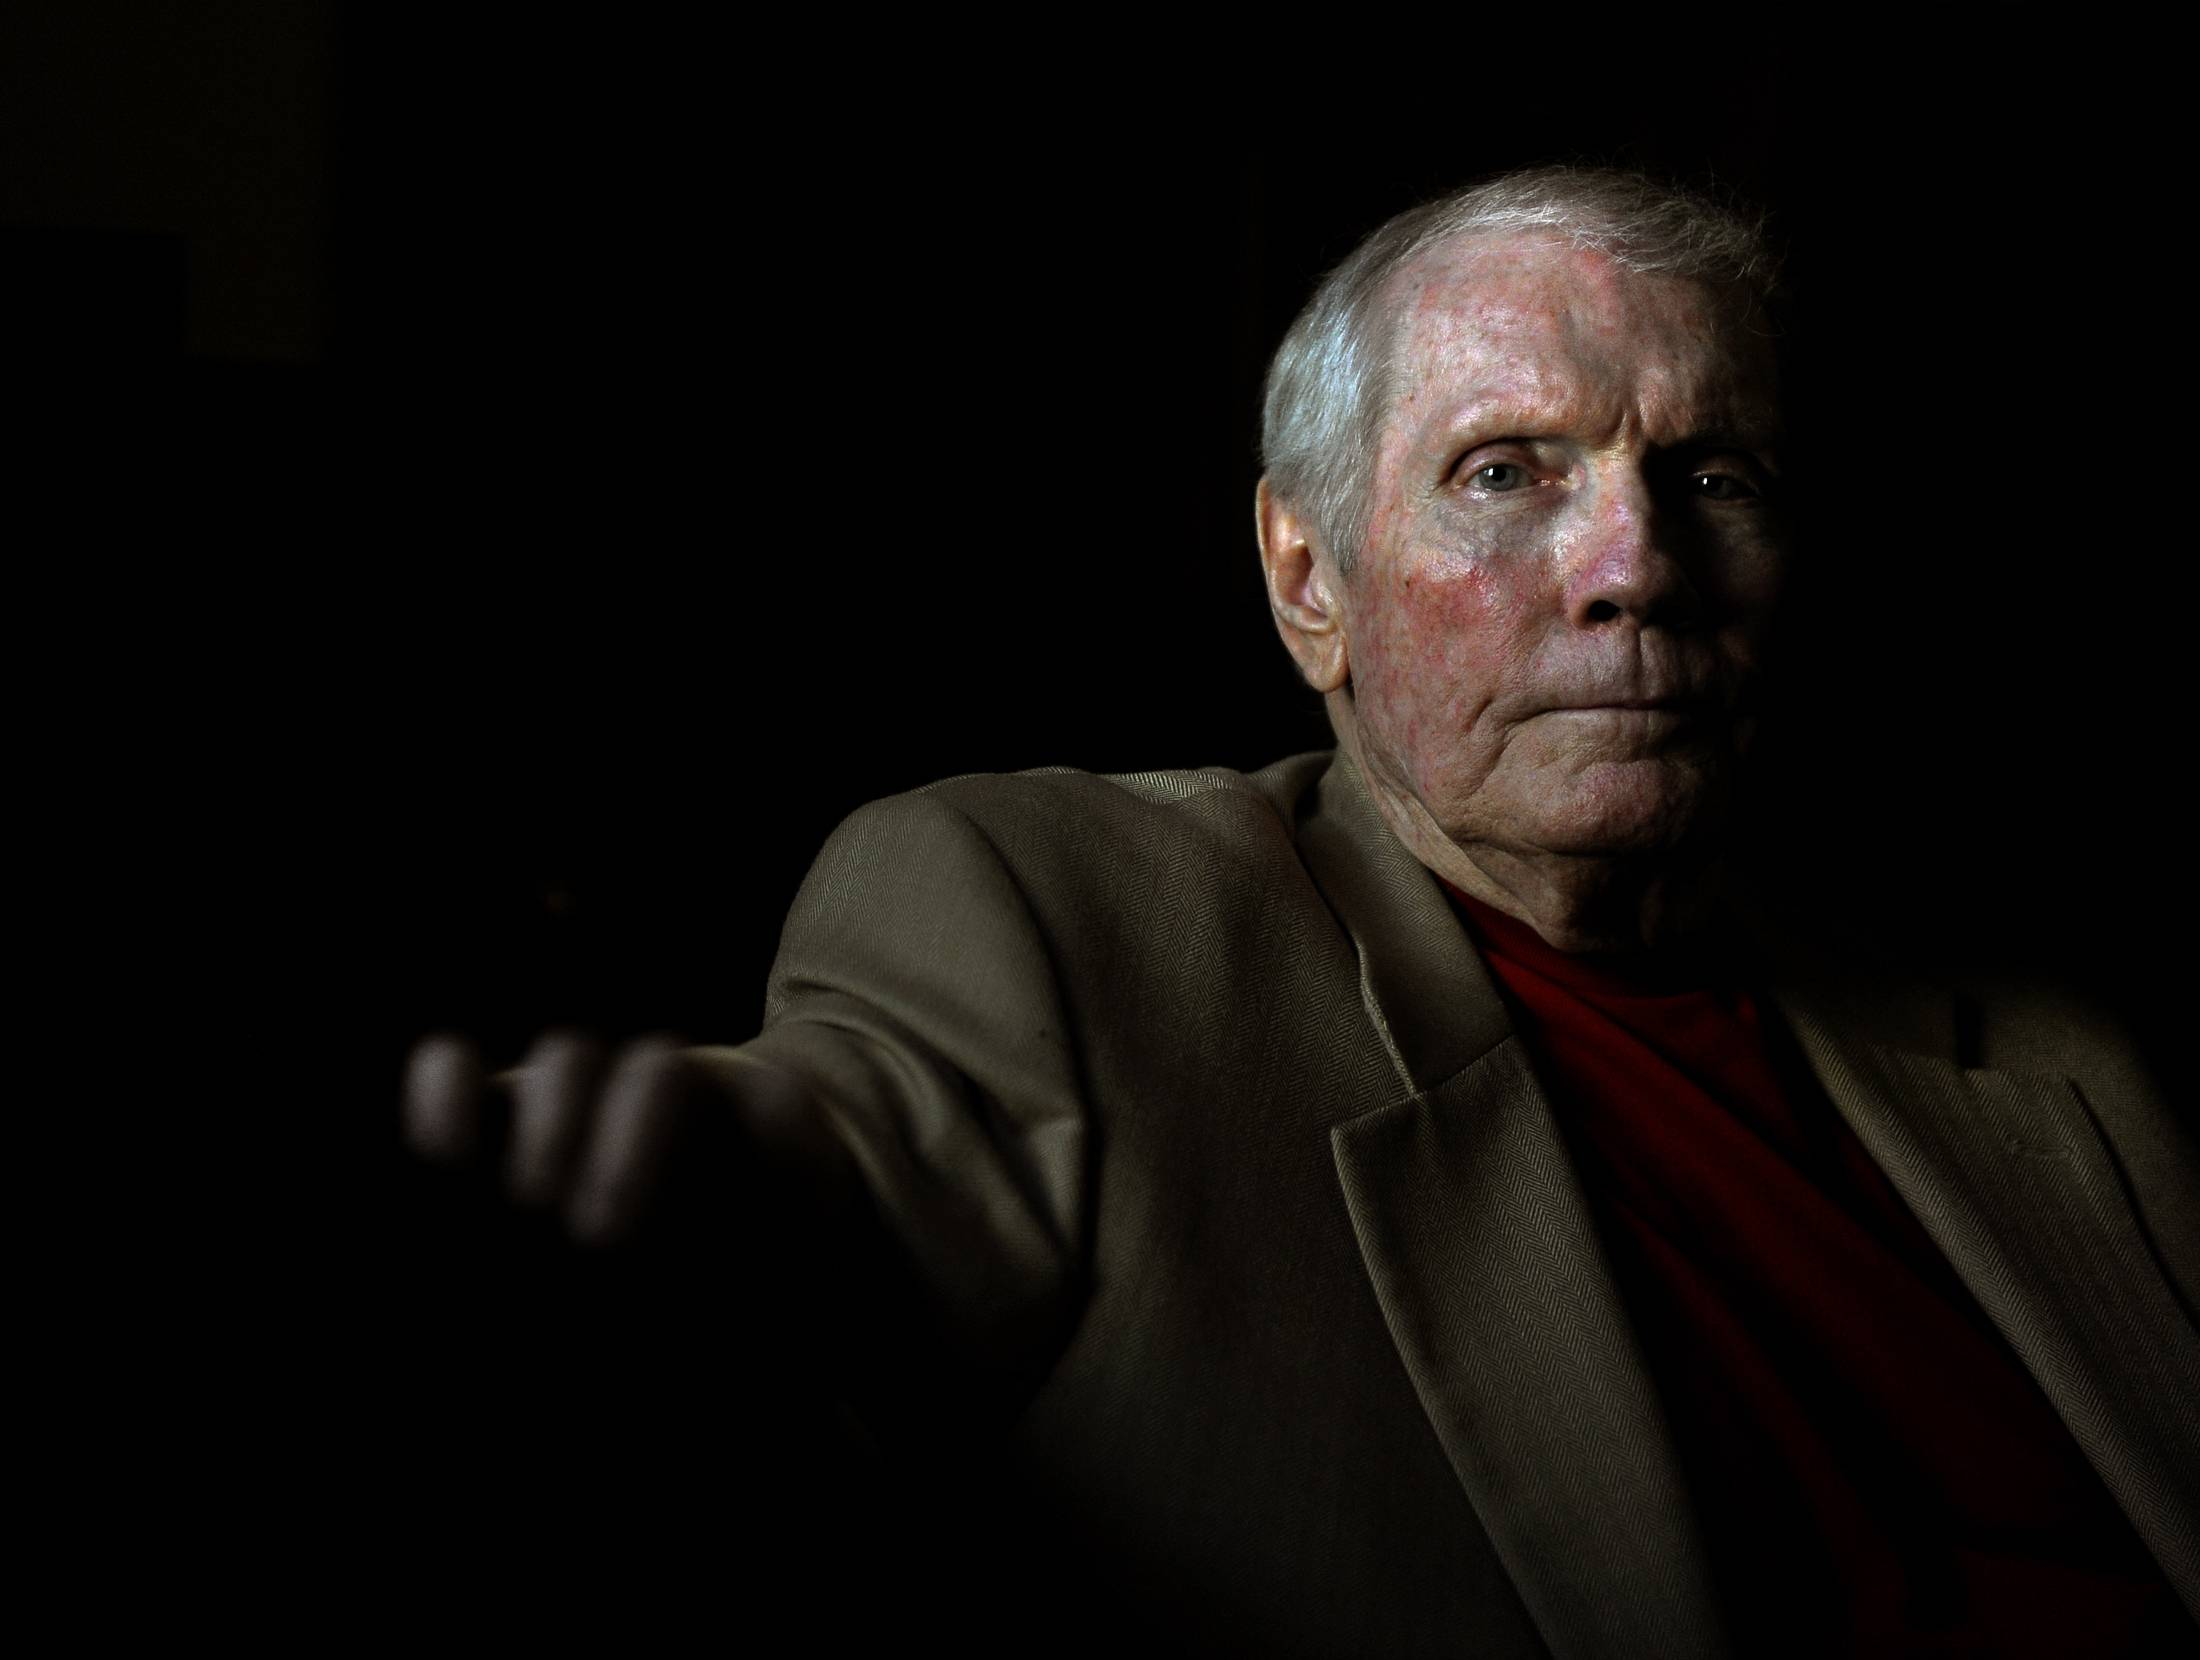 The Rev. Fred Phelps, shown in Topeka, Kan., in 2010, was the leader of the controversial Westboro Baptist Church in Topeka. He died March 19 at age 84.